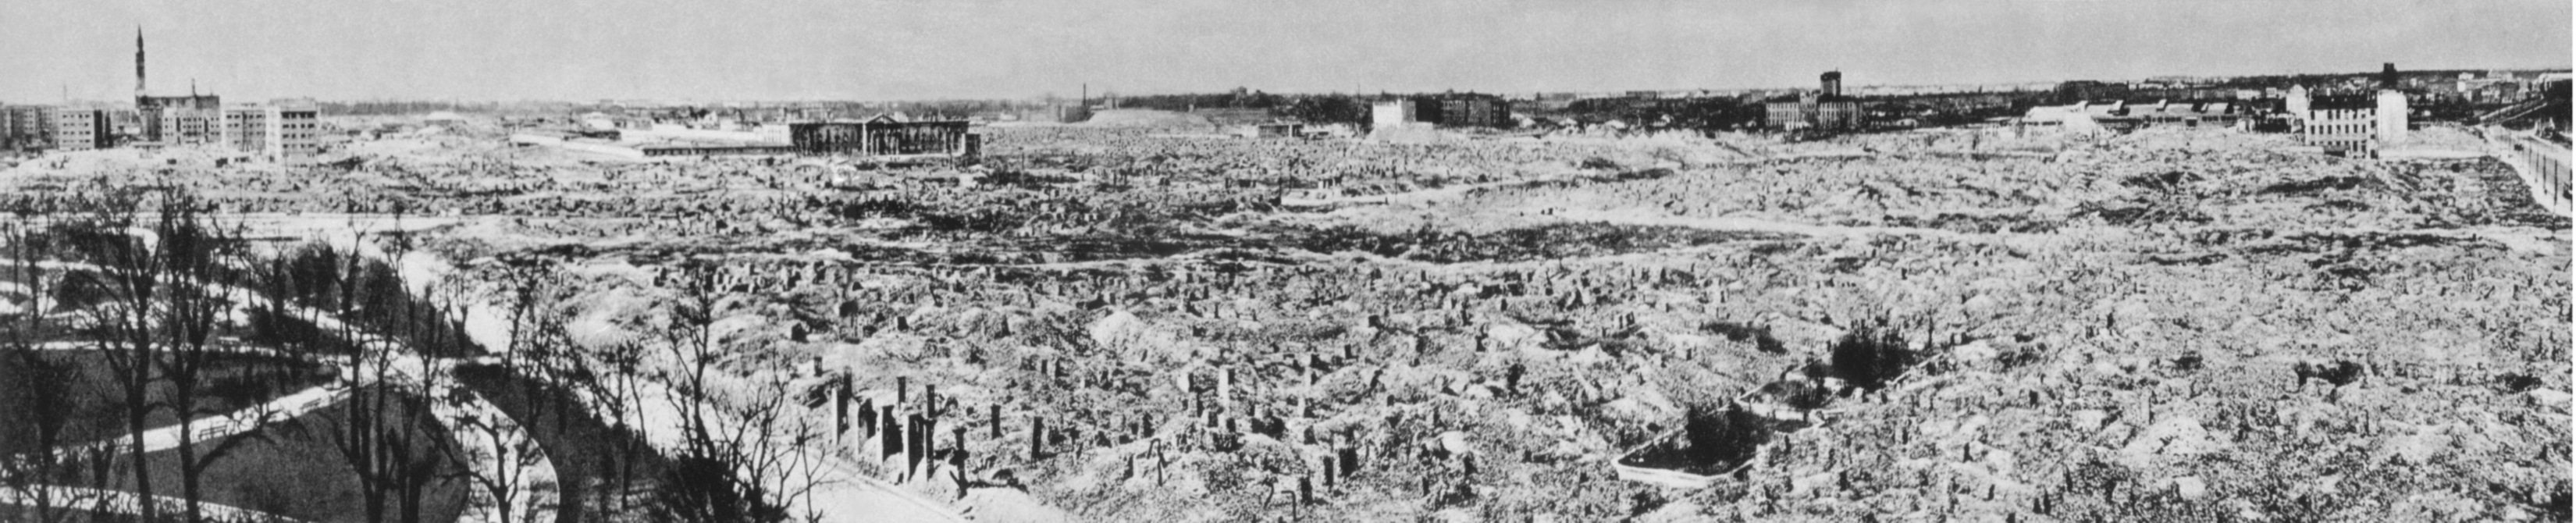 Warsaw Ghetto destroyed by Germans, 1945.jpg